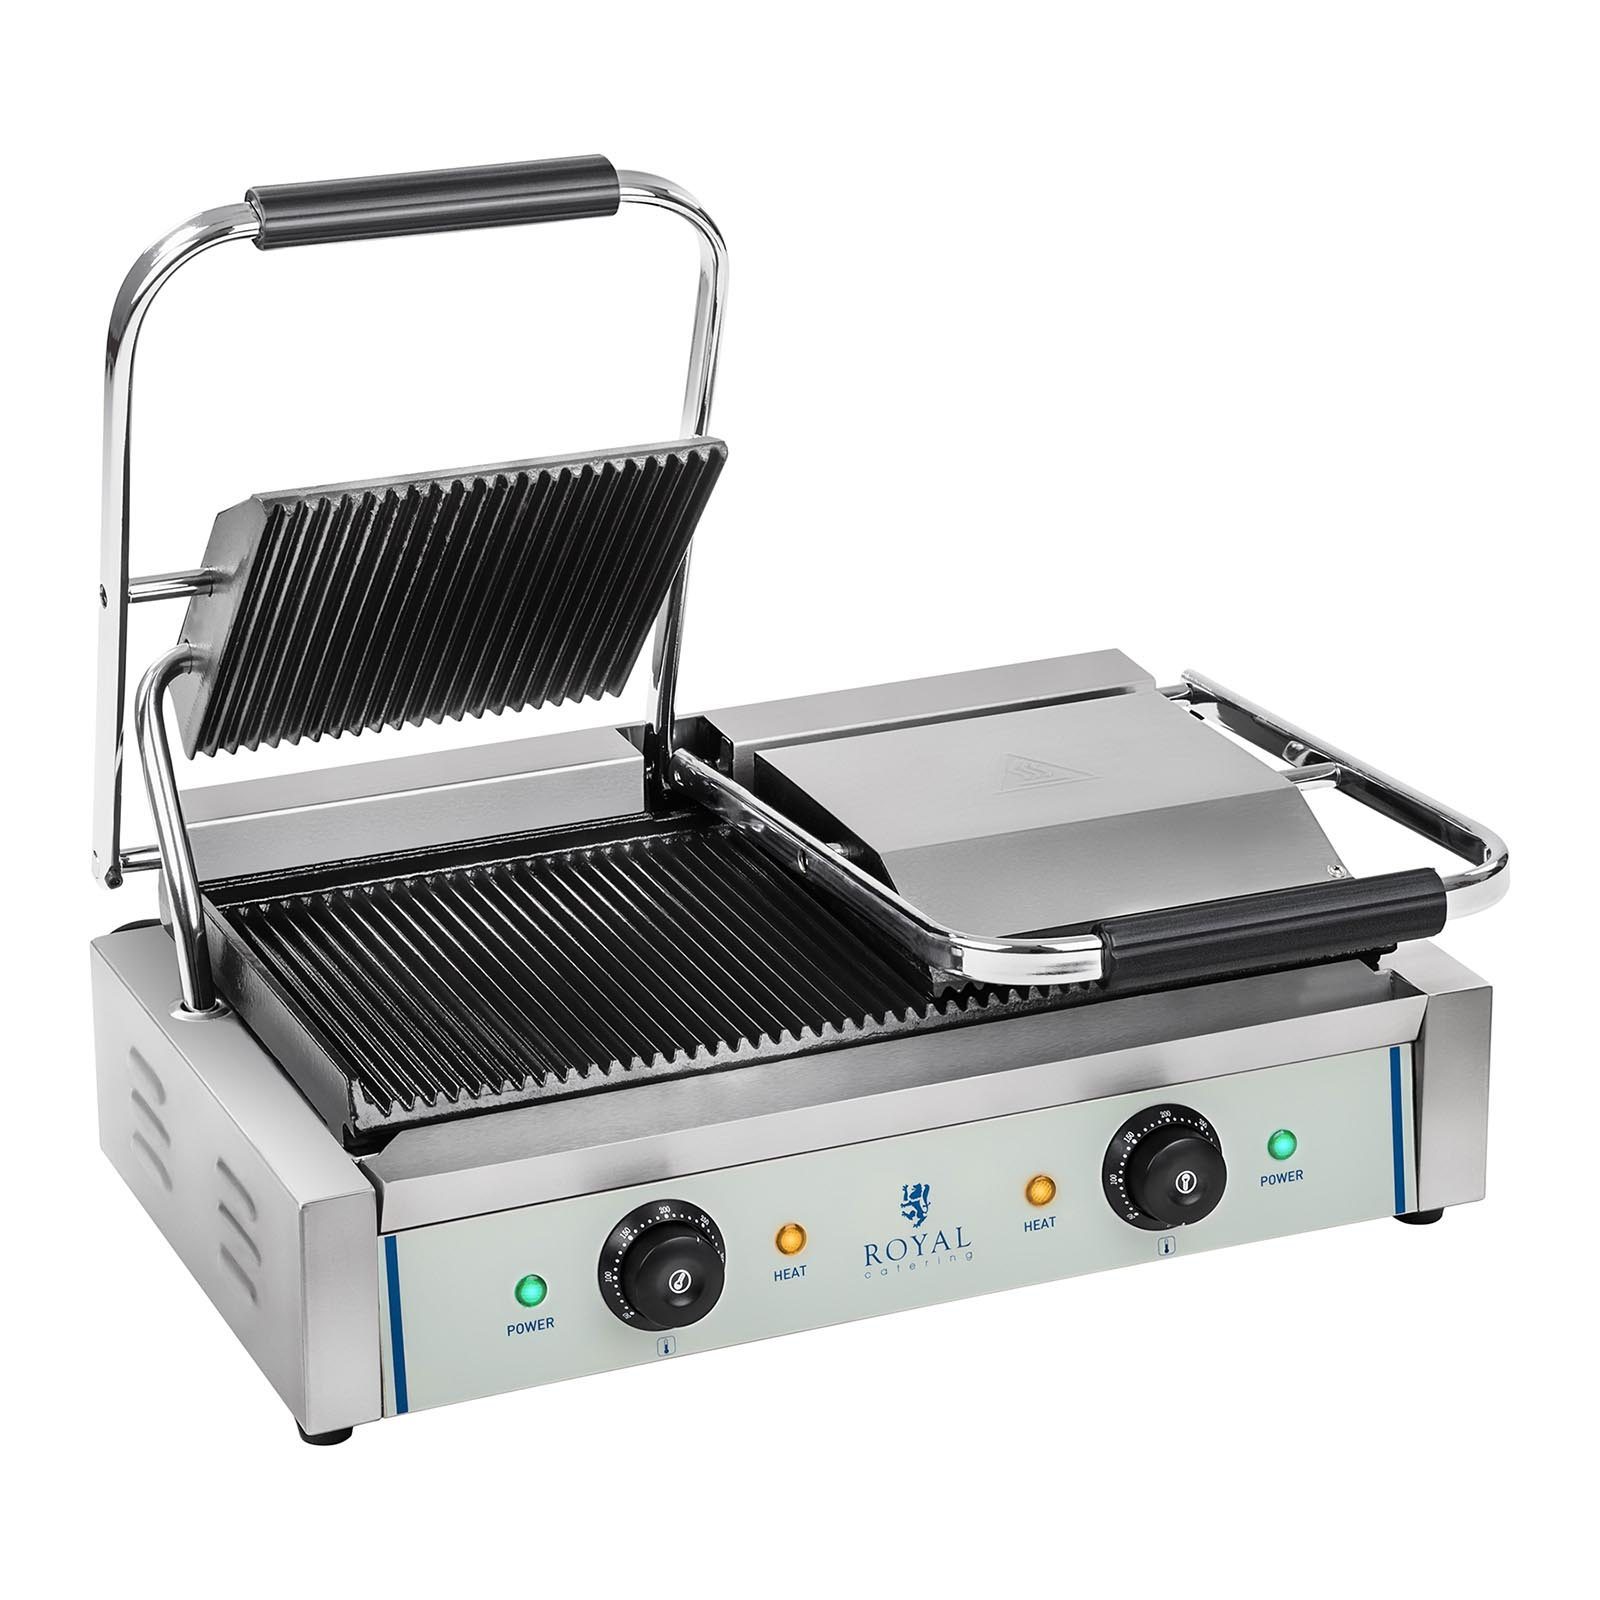 double panini machine contact grill toaster sandwich maker ribbed ribbed 2200w ebay. Black Bedroom Furniture Sets. Home Design Ideas